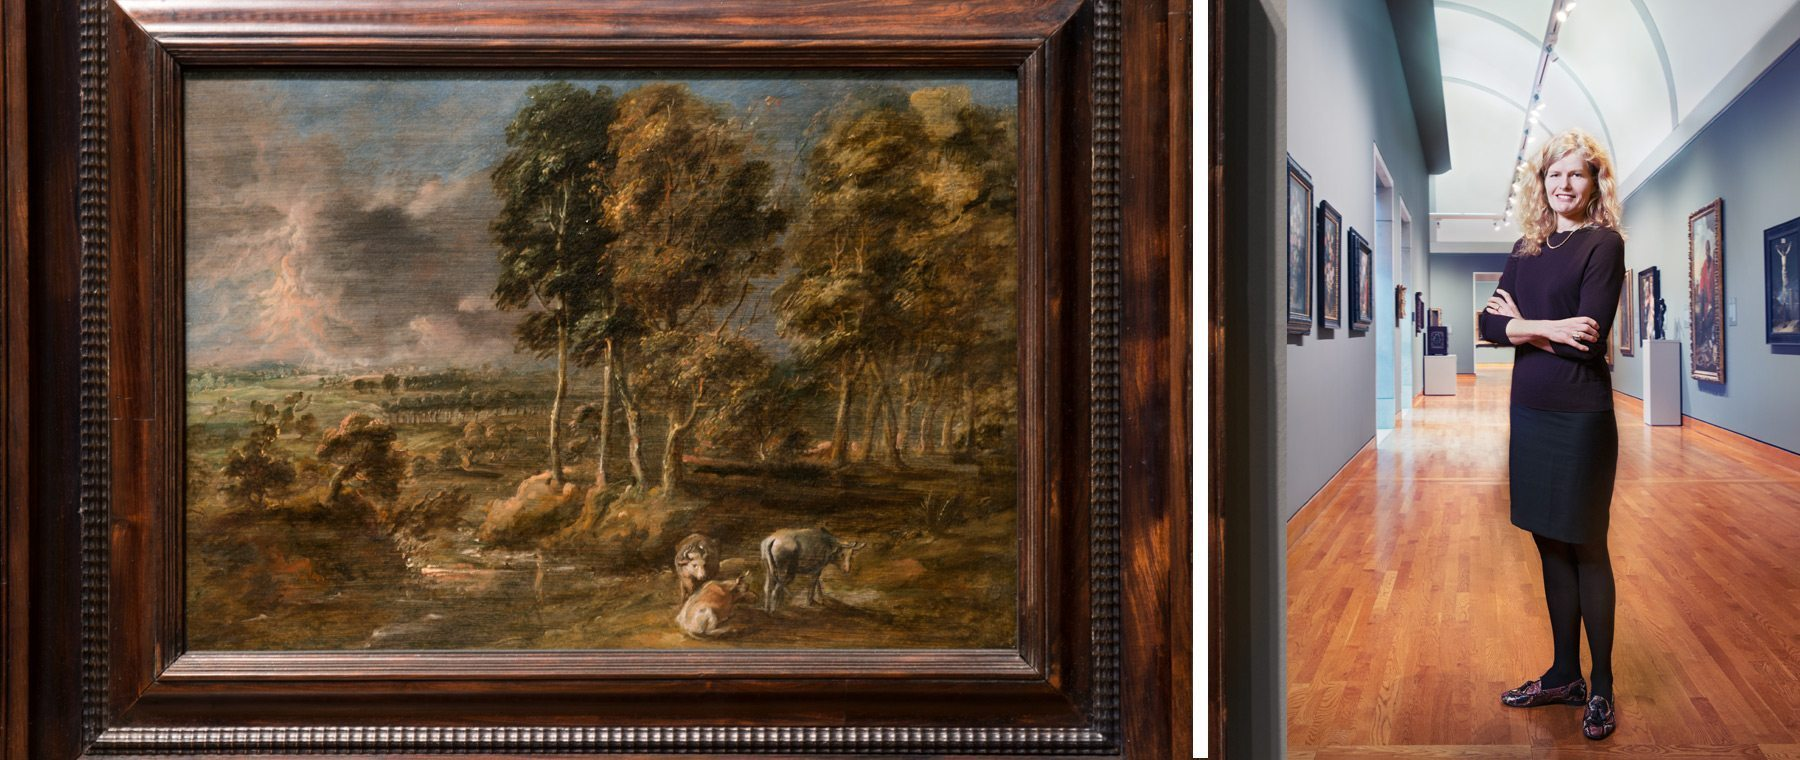 Secret of the Stolen Painting — Art 'detective' solves missing history of Nazi looted Rubens